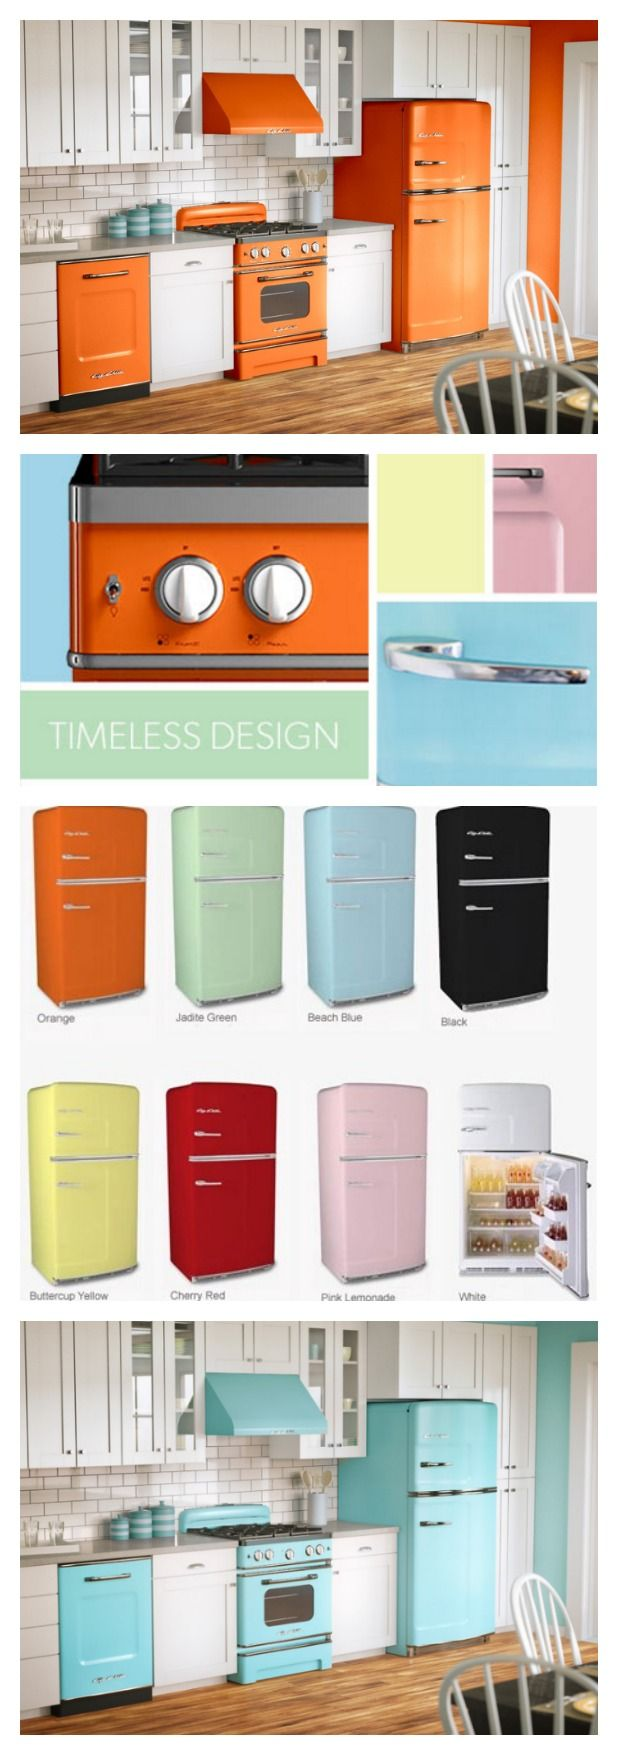 The Great America Fridge is Back! Stunning retro refrigerators in 200+ colors. Discover your dream retro fridge today!